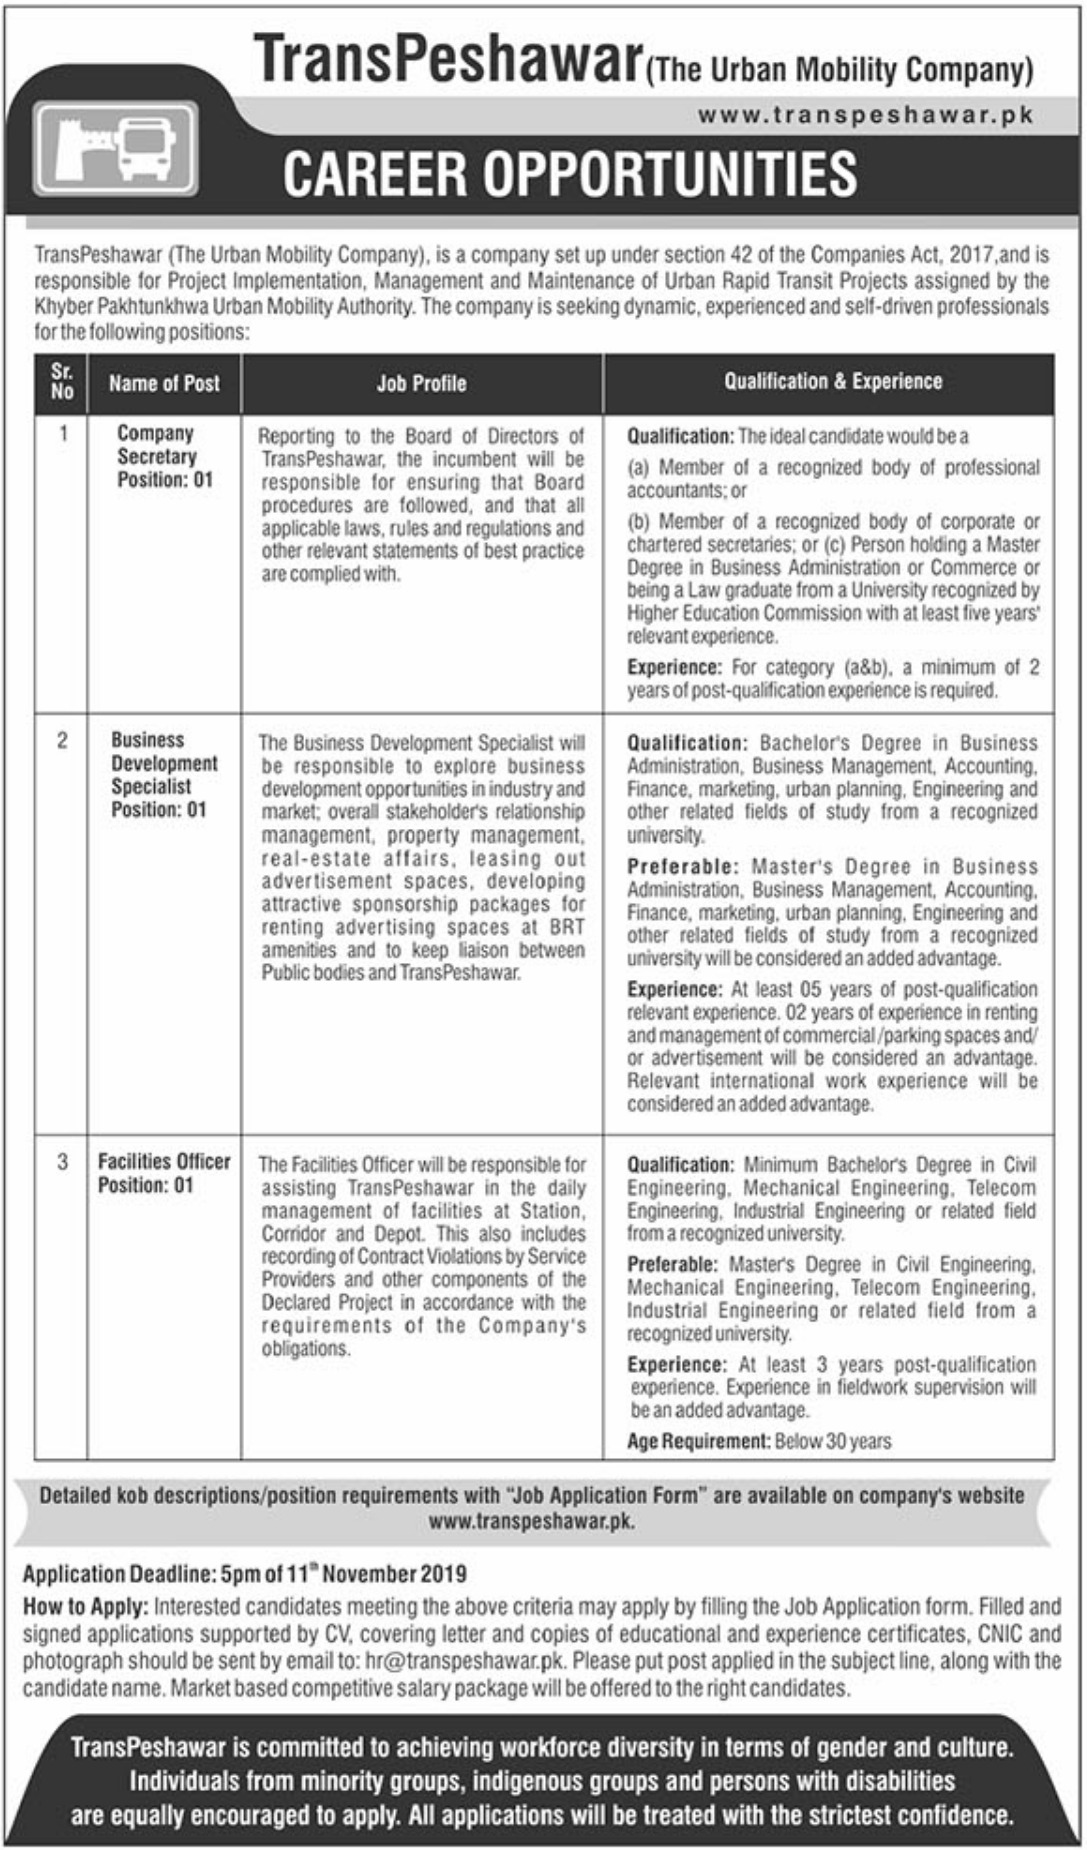 TransPeshawar Jobs 2019 Job Application Form